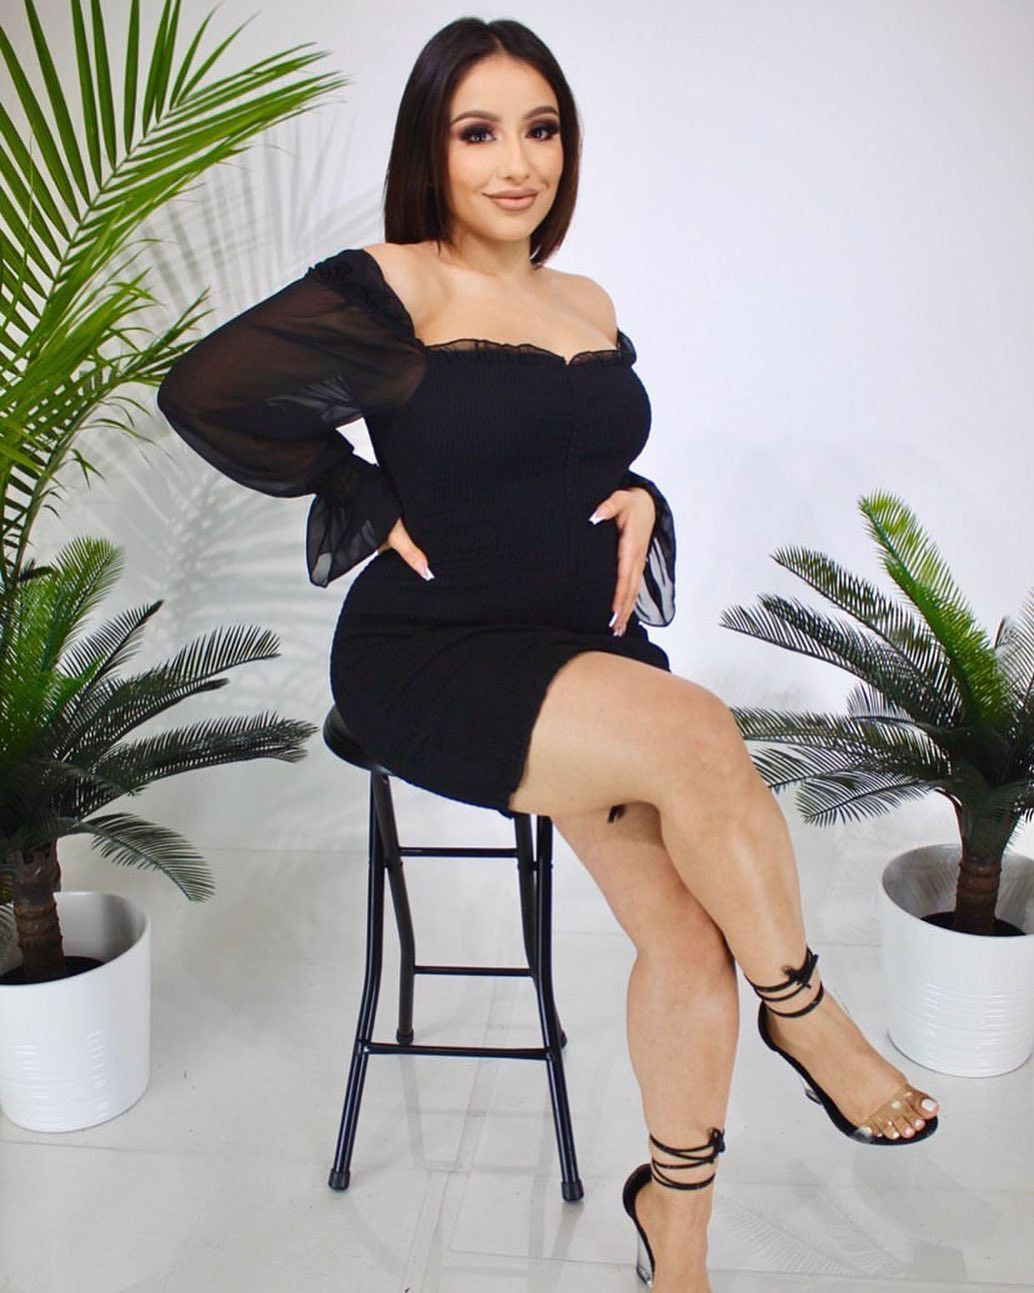 Erika Rodriguez little black dress colour outfit, you must try, woman thighs, sexy leg picture